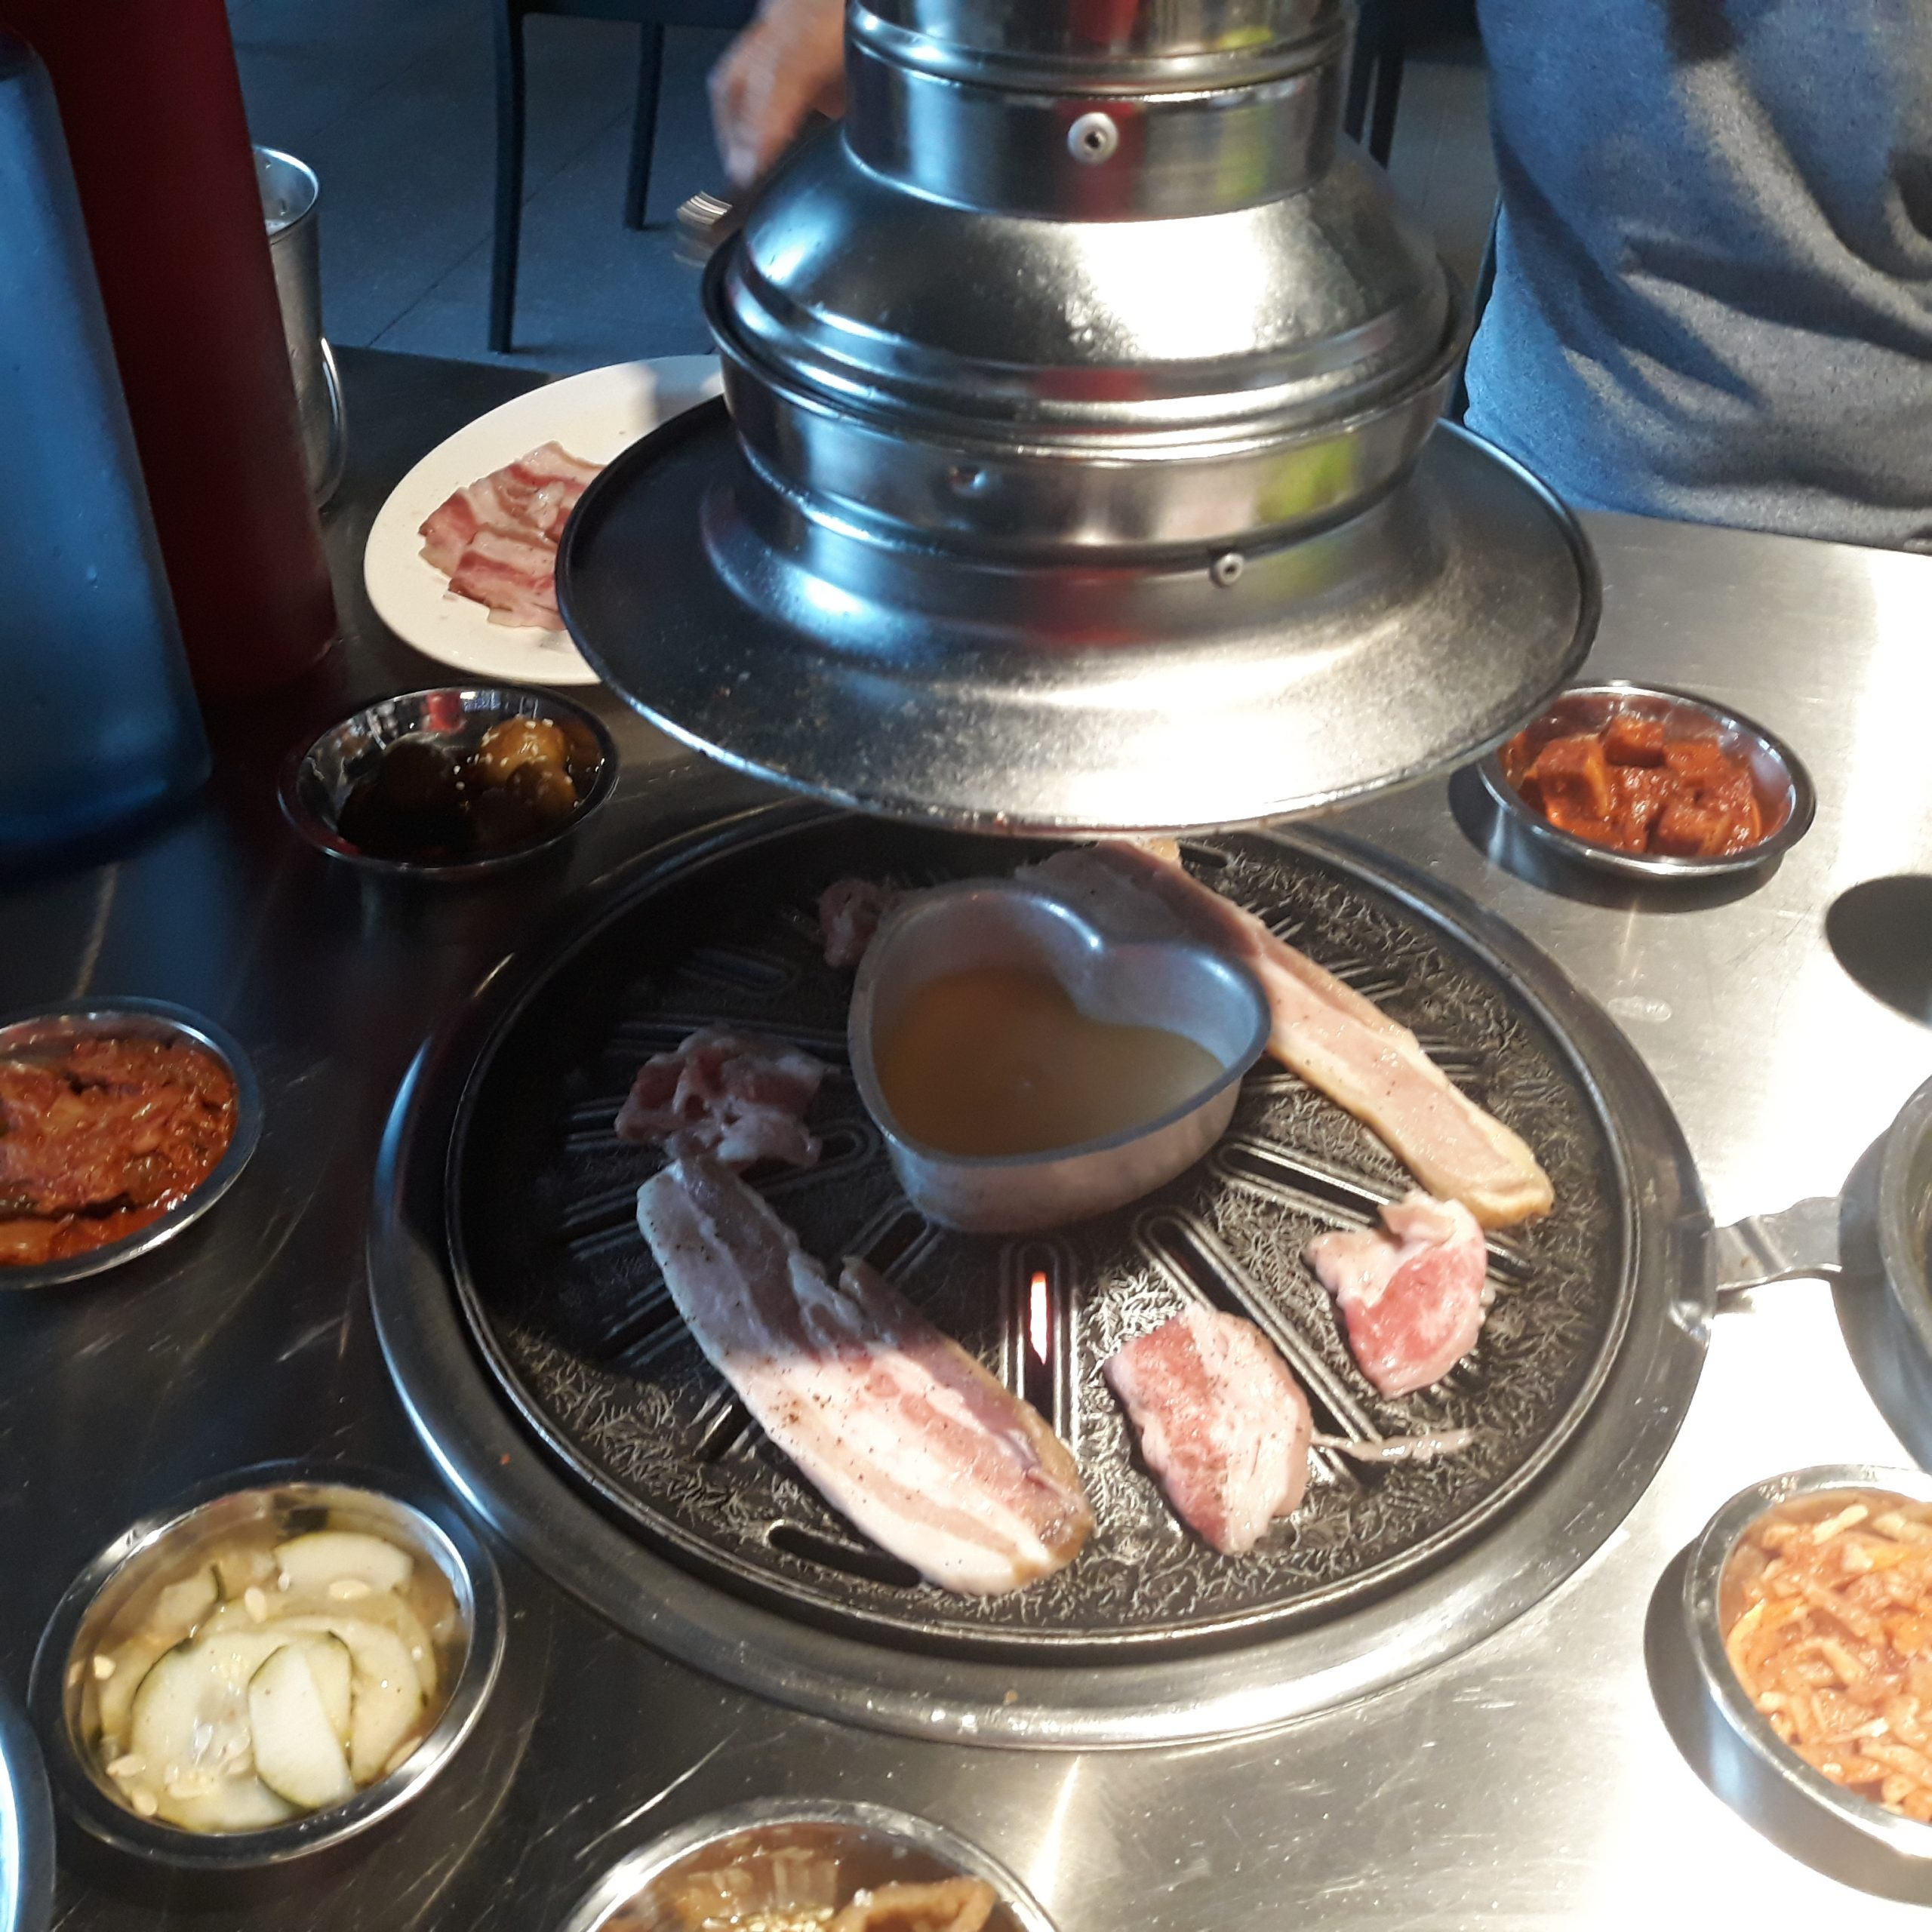 Grilling some Seoulgyupsal meat with their special cheese sauce in the middle of the griller.